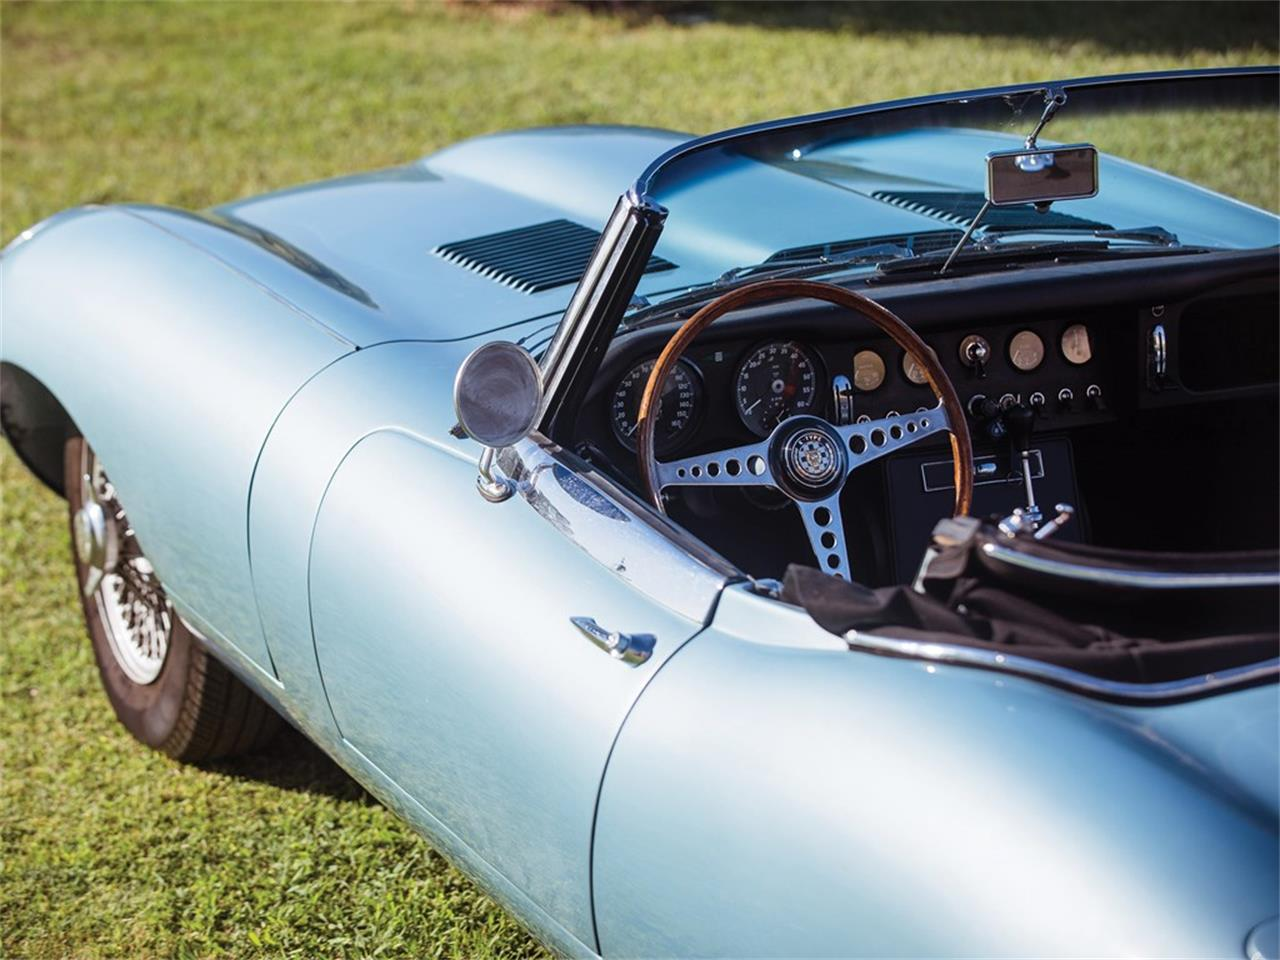 1964 Jaguar E-Type (CC-1273463) for sale in Hammersmith, London